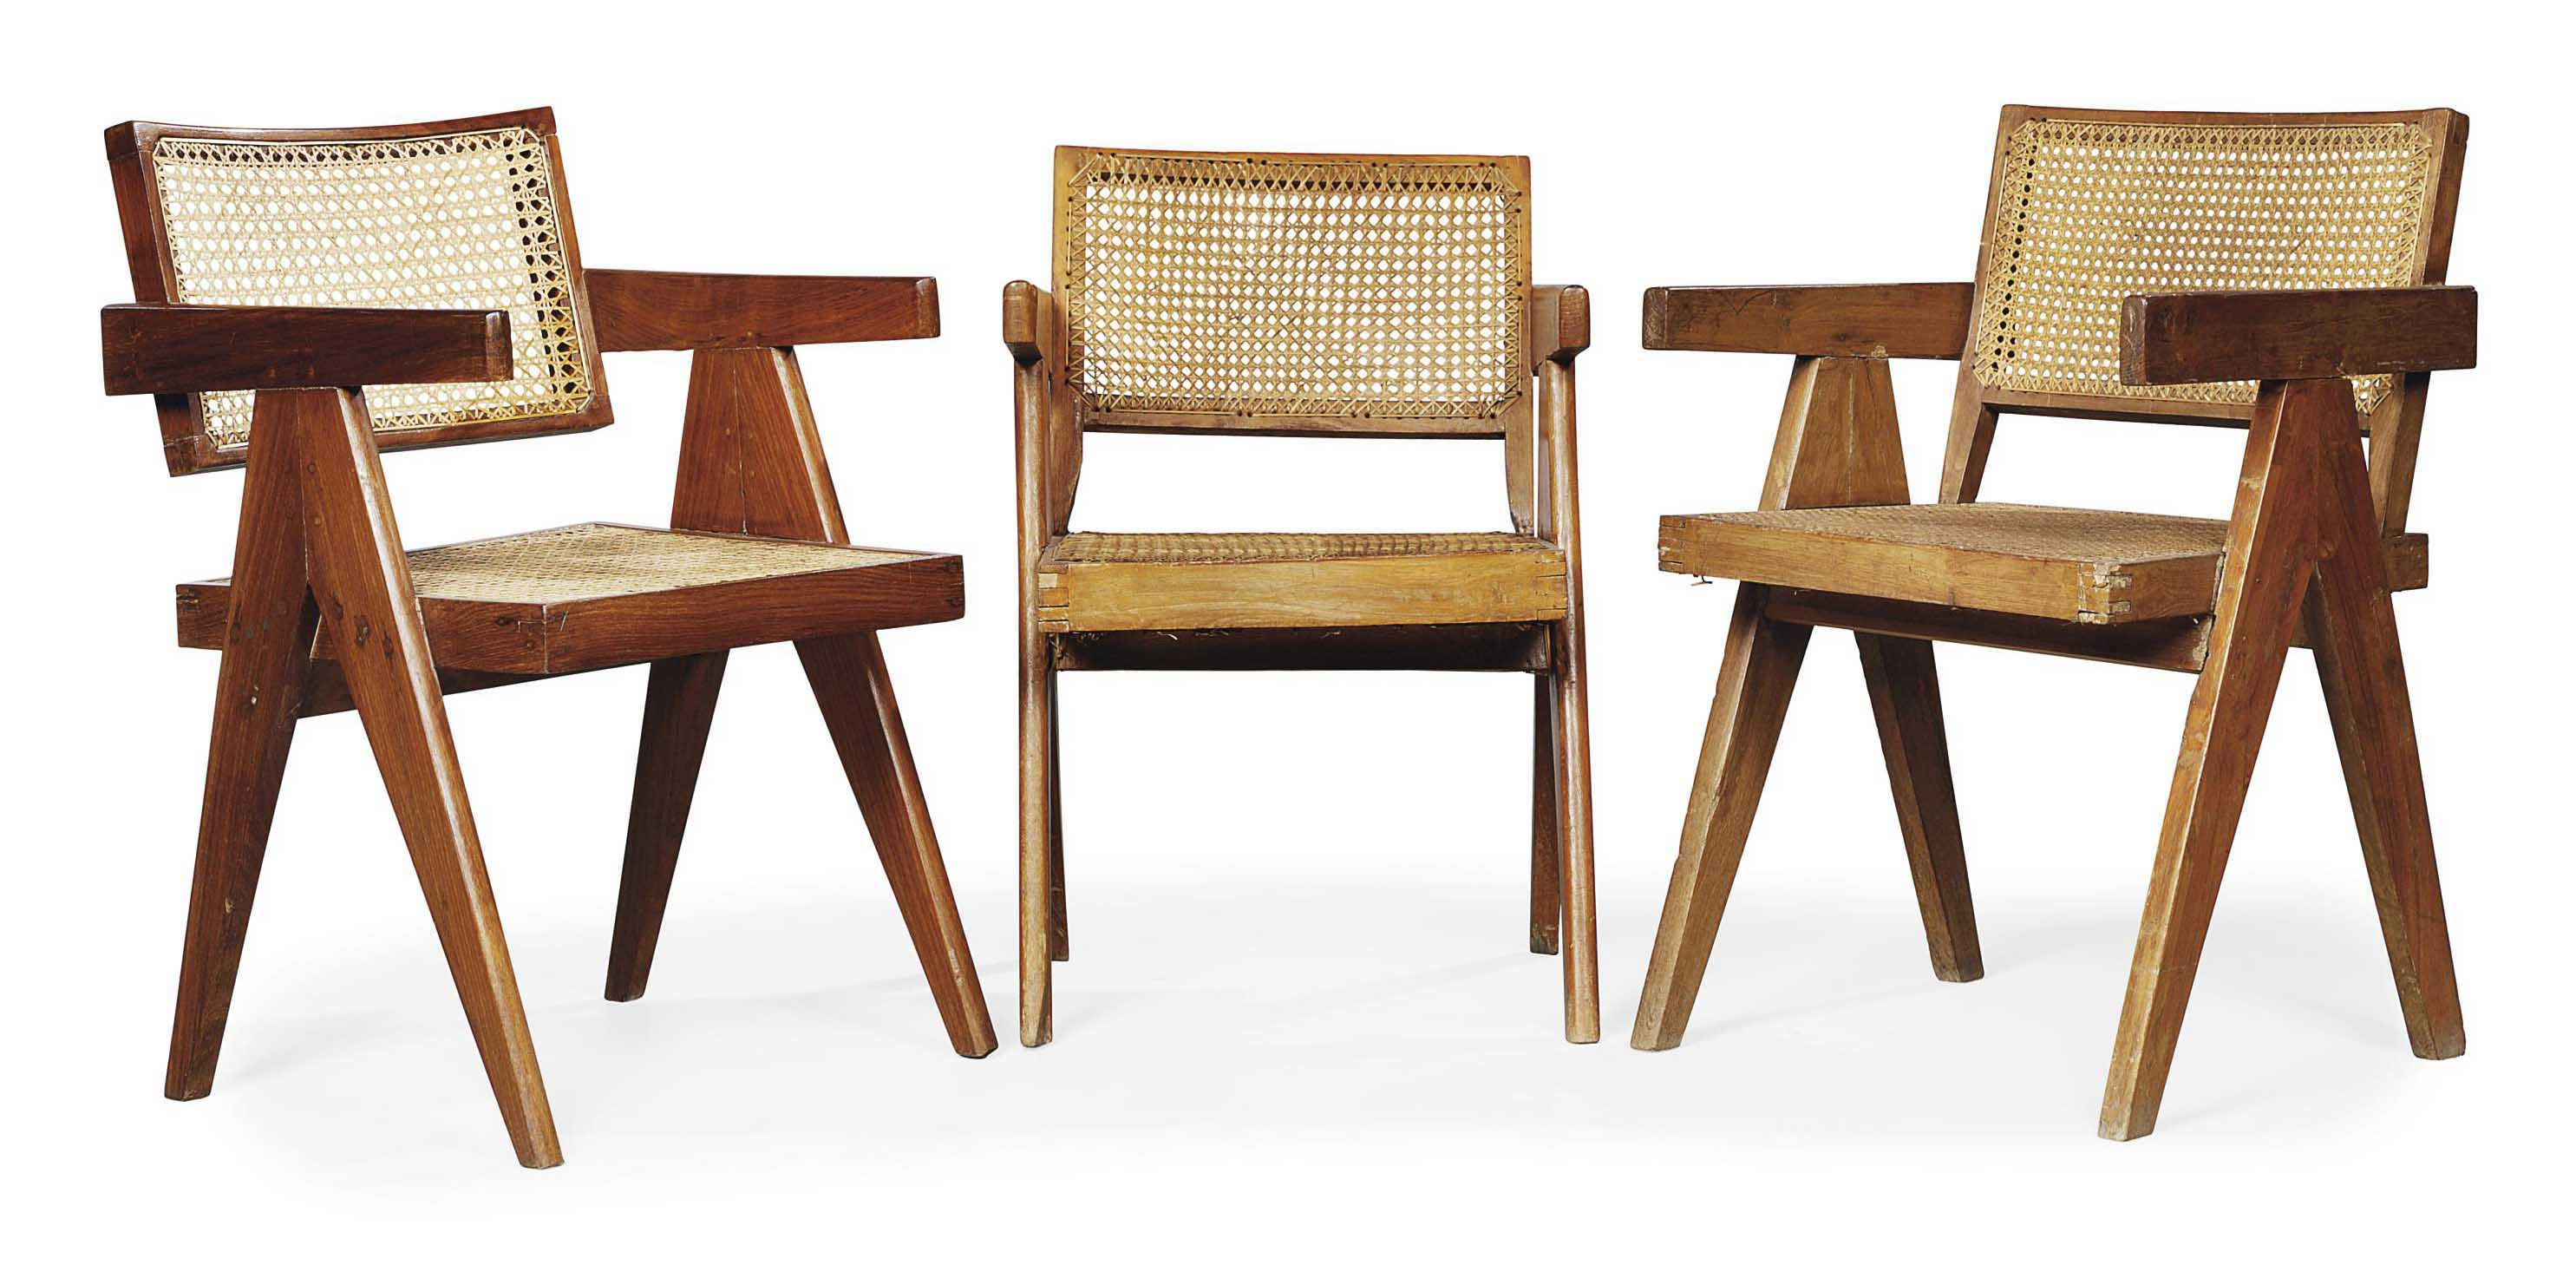 A SET OF THREE PIERRE JEANNERET TEAK AND CANEWORK 'CONFÉRENCE' ARMCHAIRS